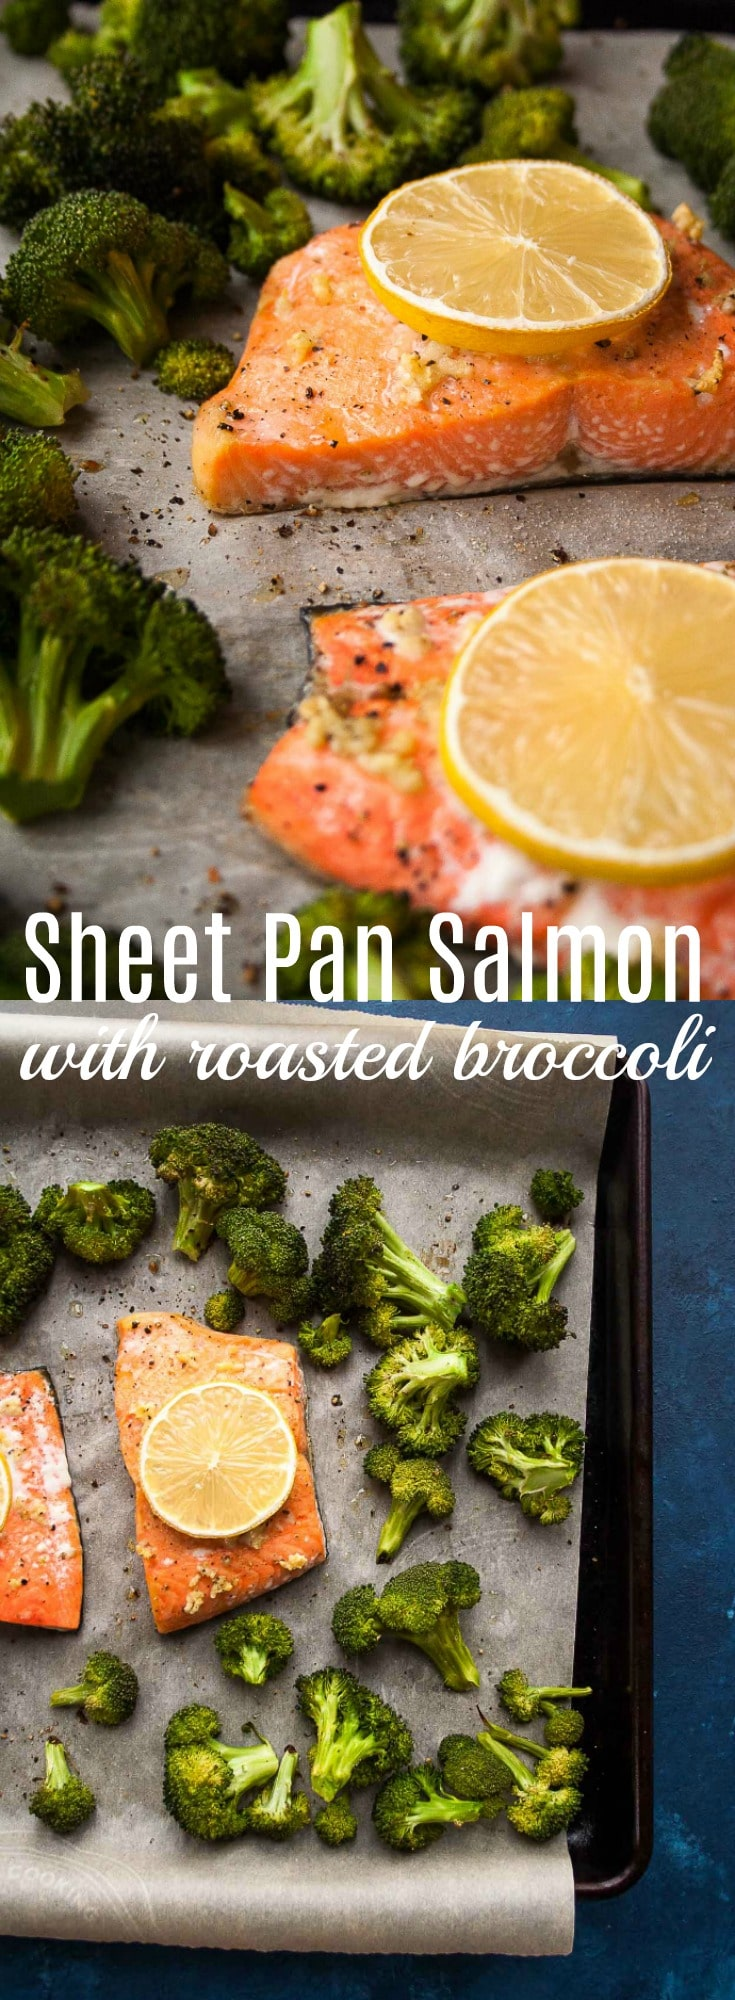 This sheet pan salmon with roasted broccoli is an easy and tasty weeknight meal your whole family will love! Ready in 20 minutes and filled with bright and fresh flavors! Salmon recipe, 20 Minute Recipe, Sheet Pan Meal,